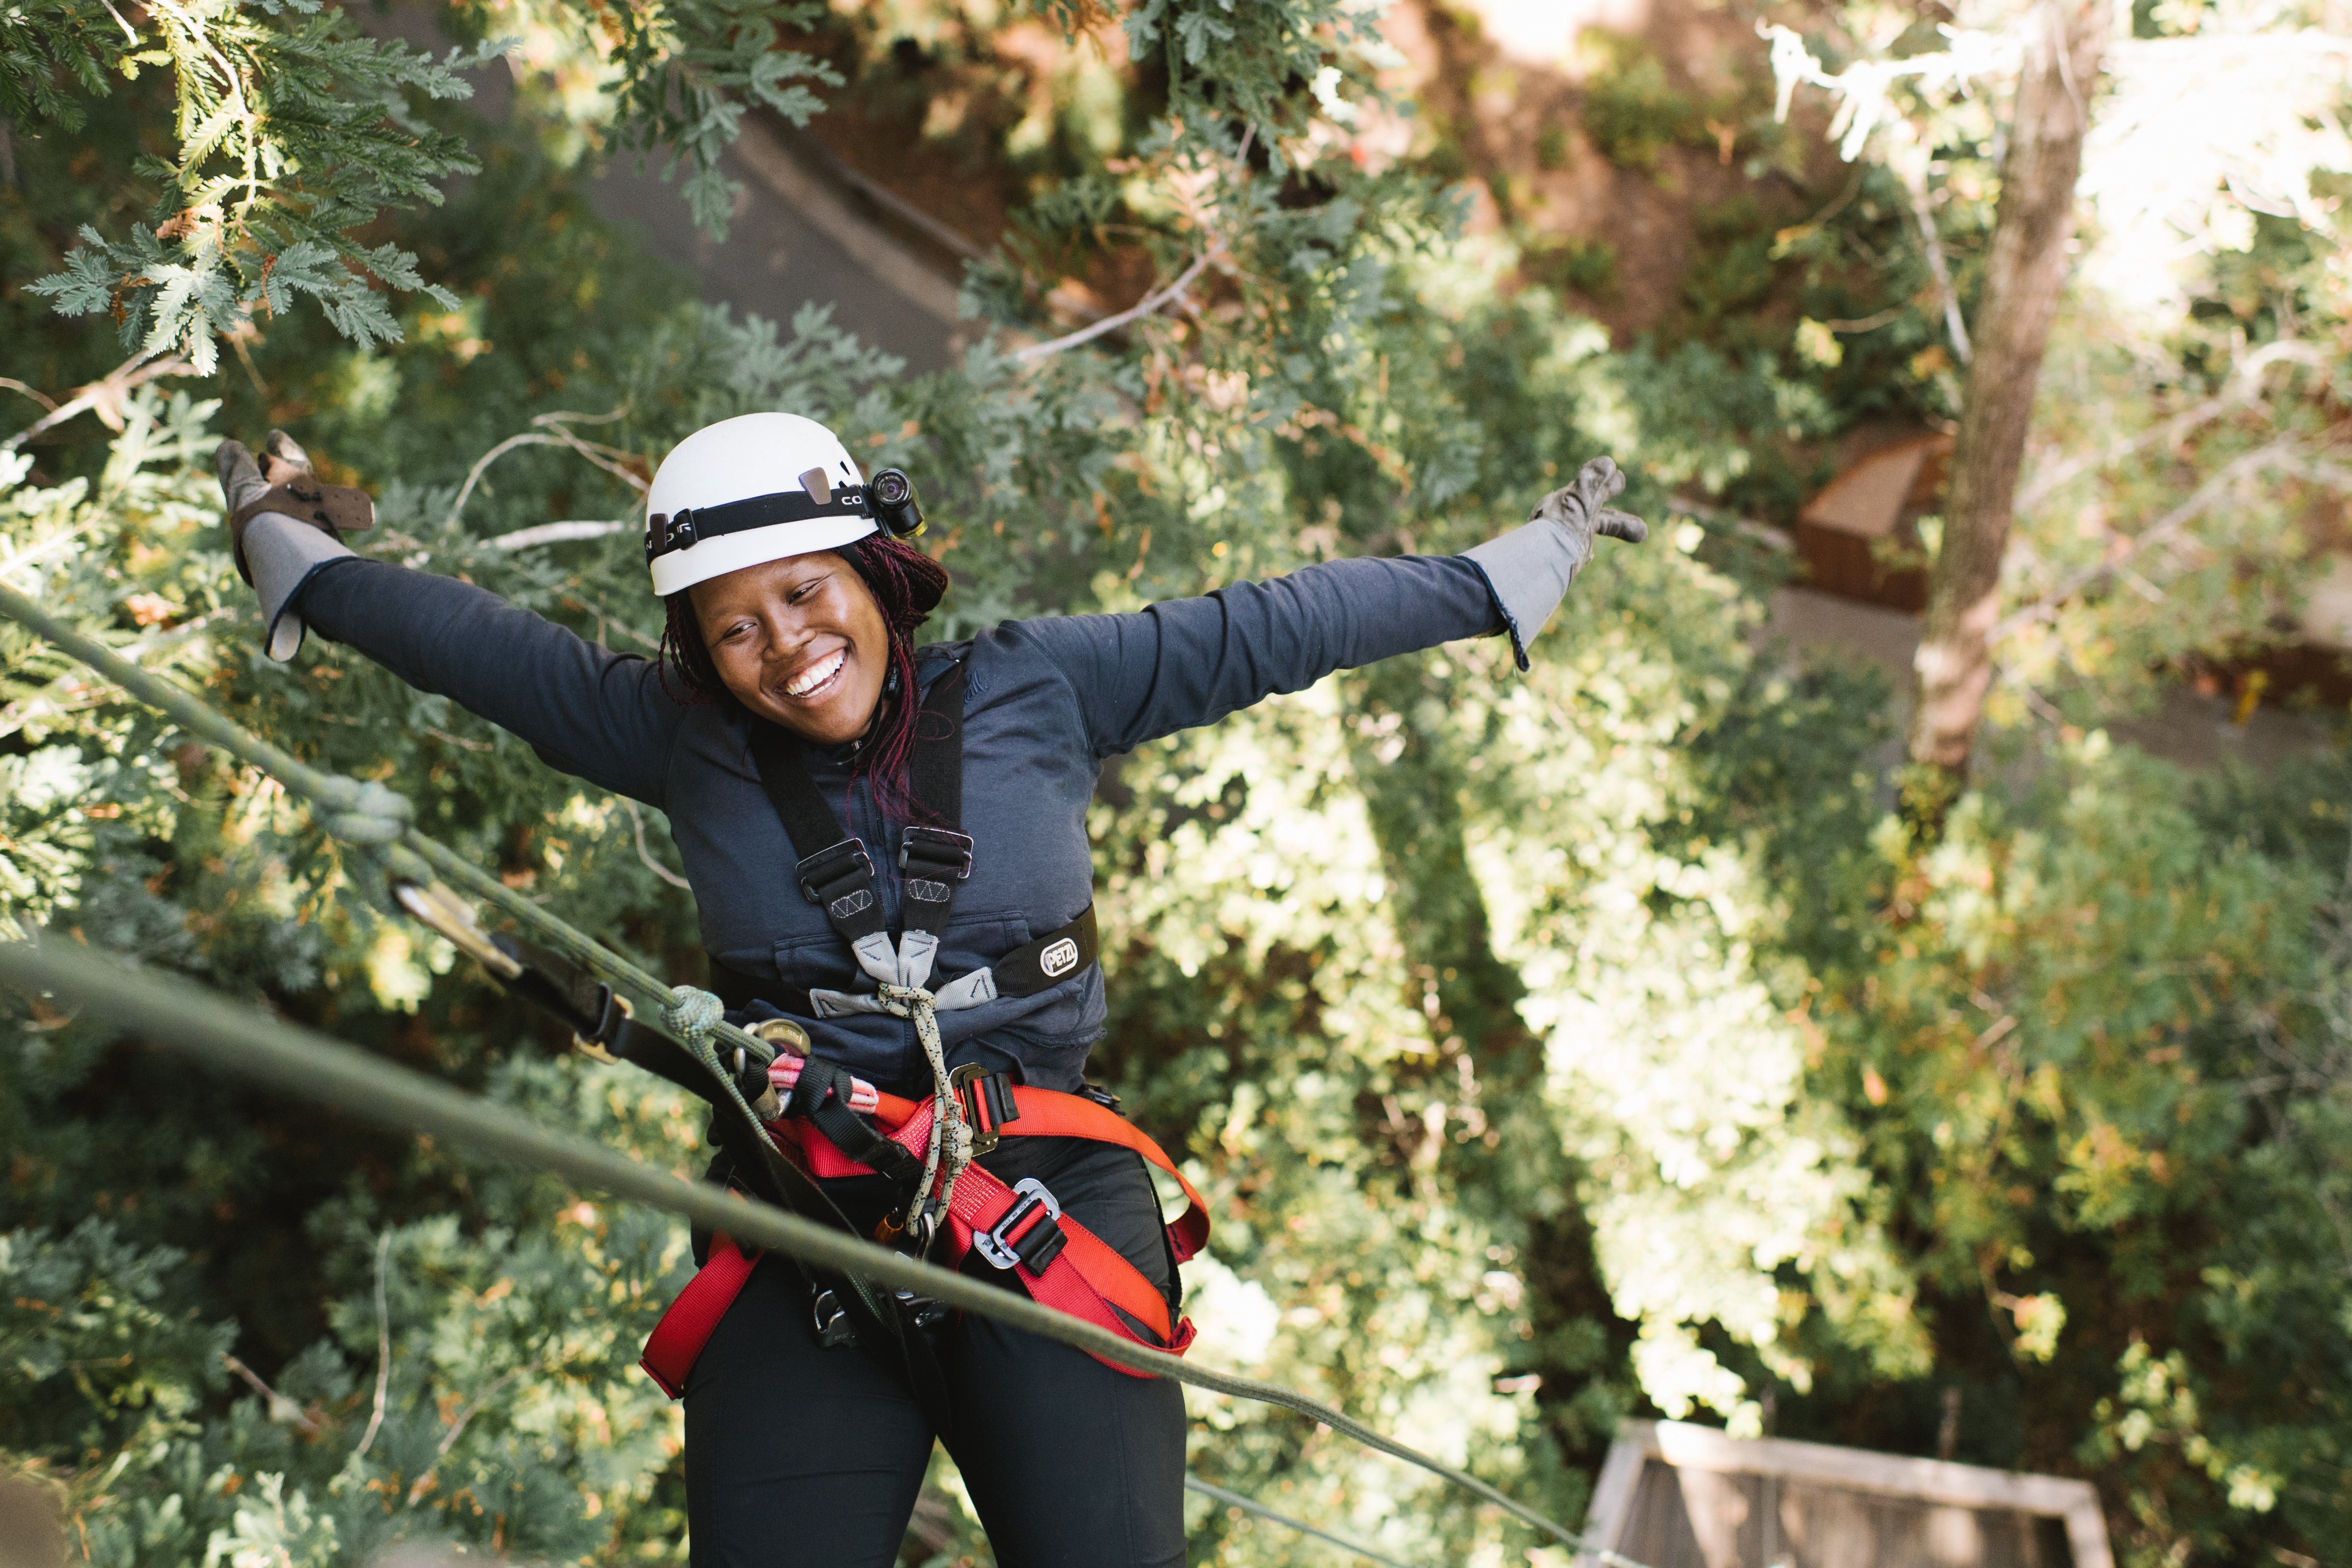 Ziplining with Sonoma Canopy Tours, Guerneville, Sonoma County, California